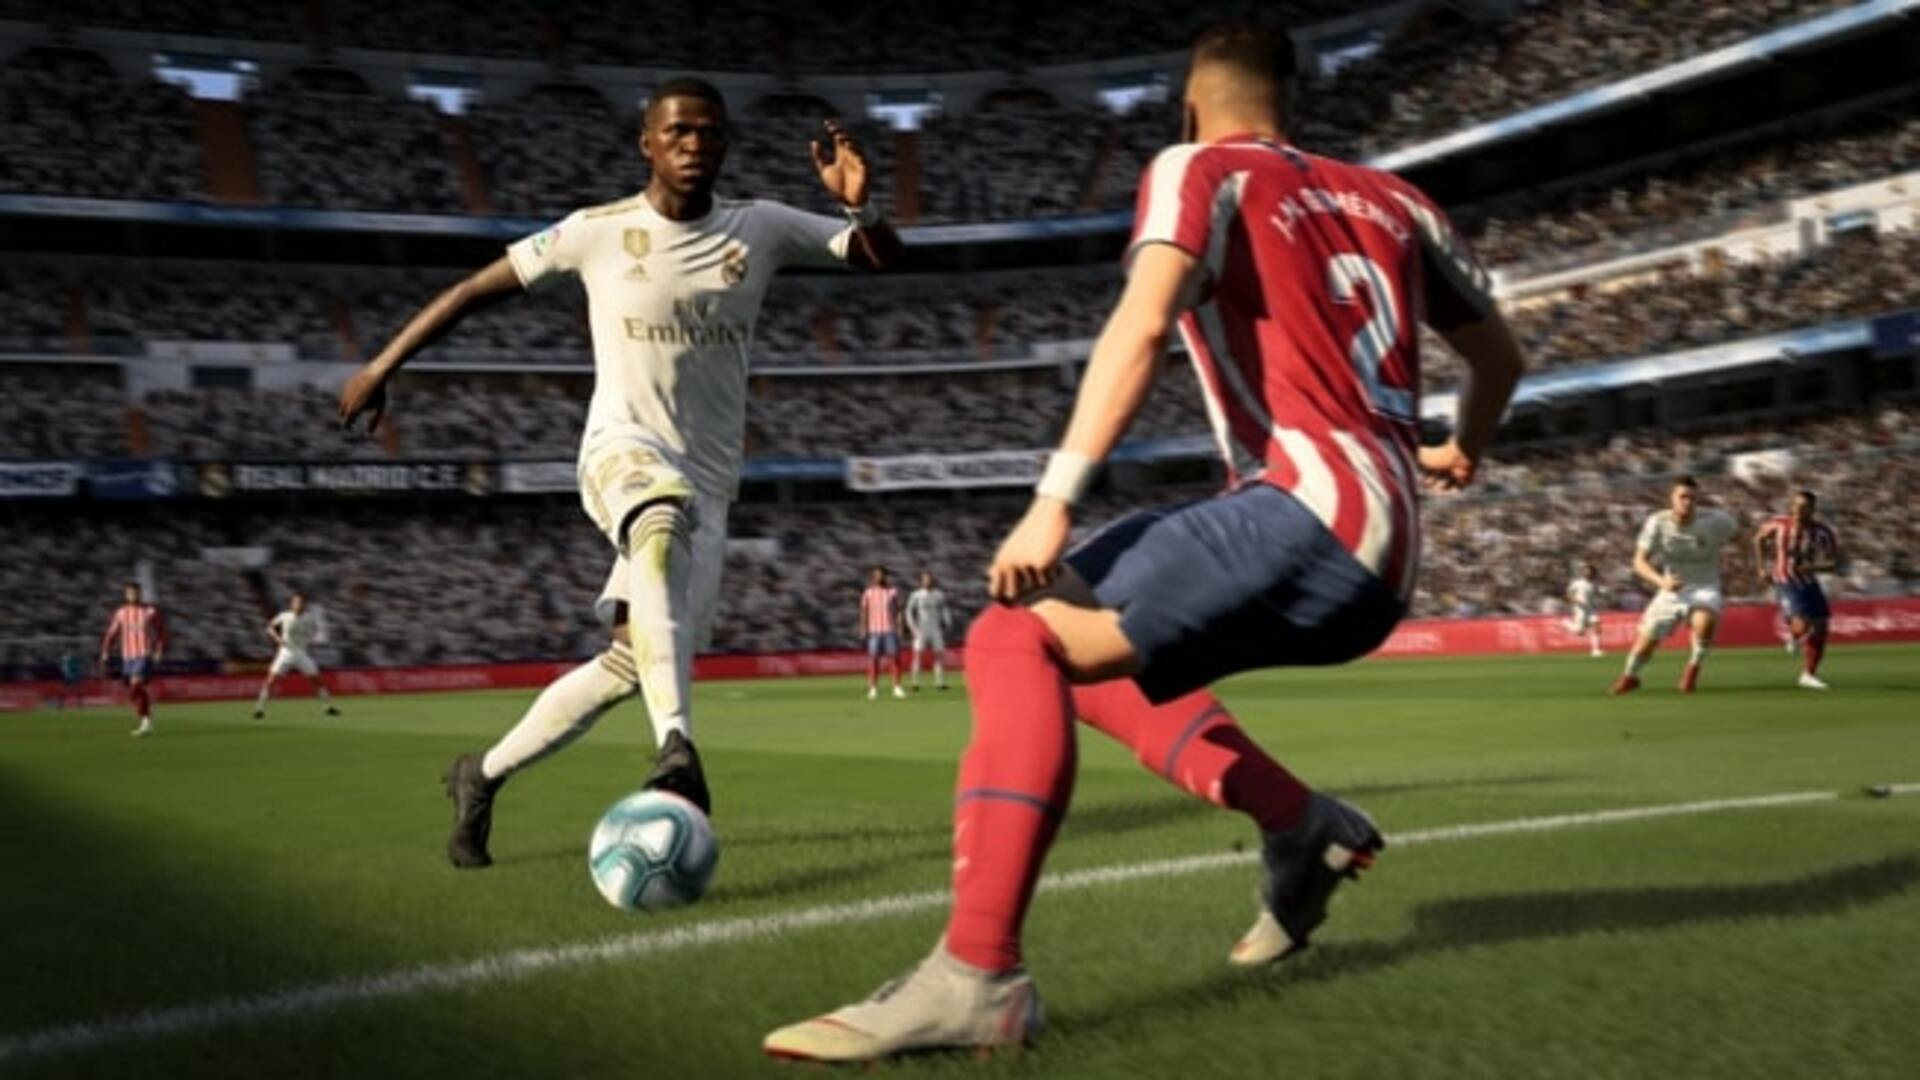 FIFA 20 Fastest Players: The Players With the Highest Pace Rating